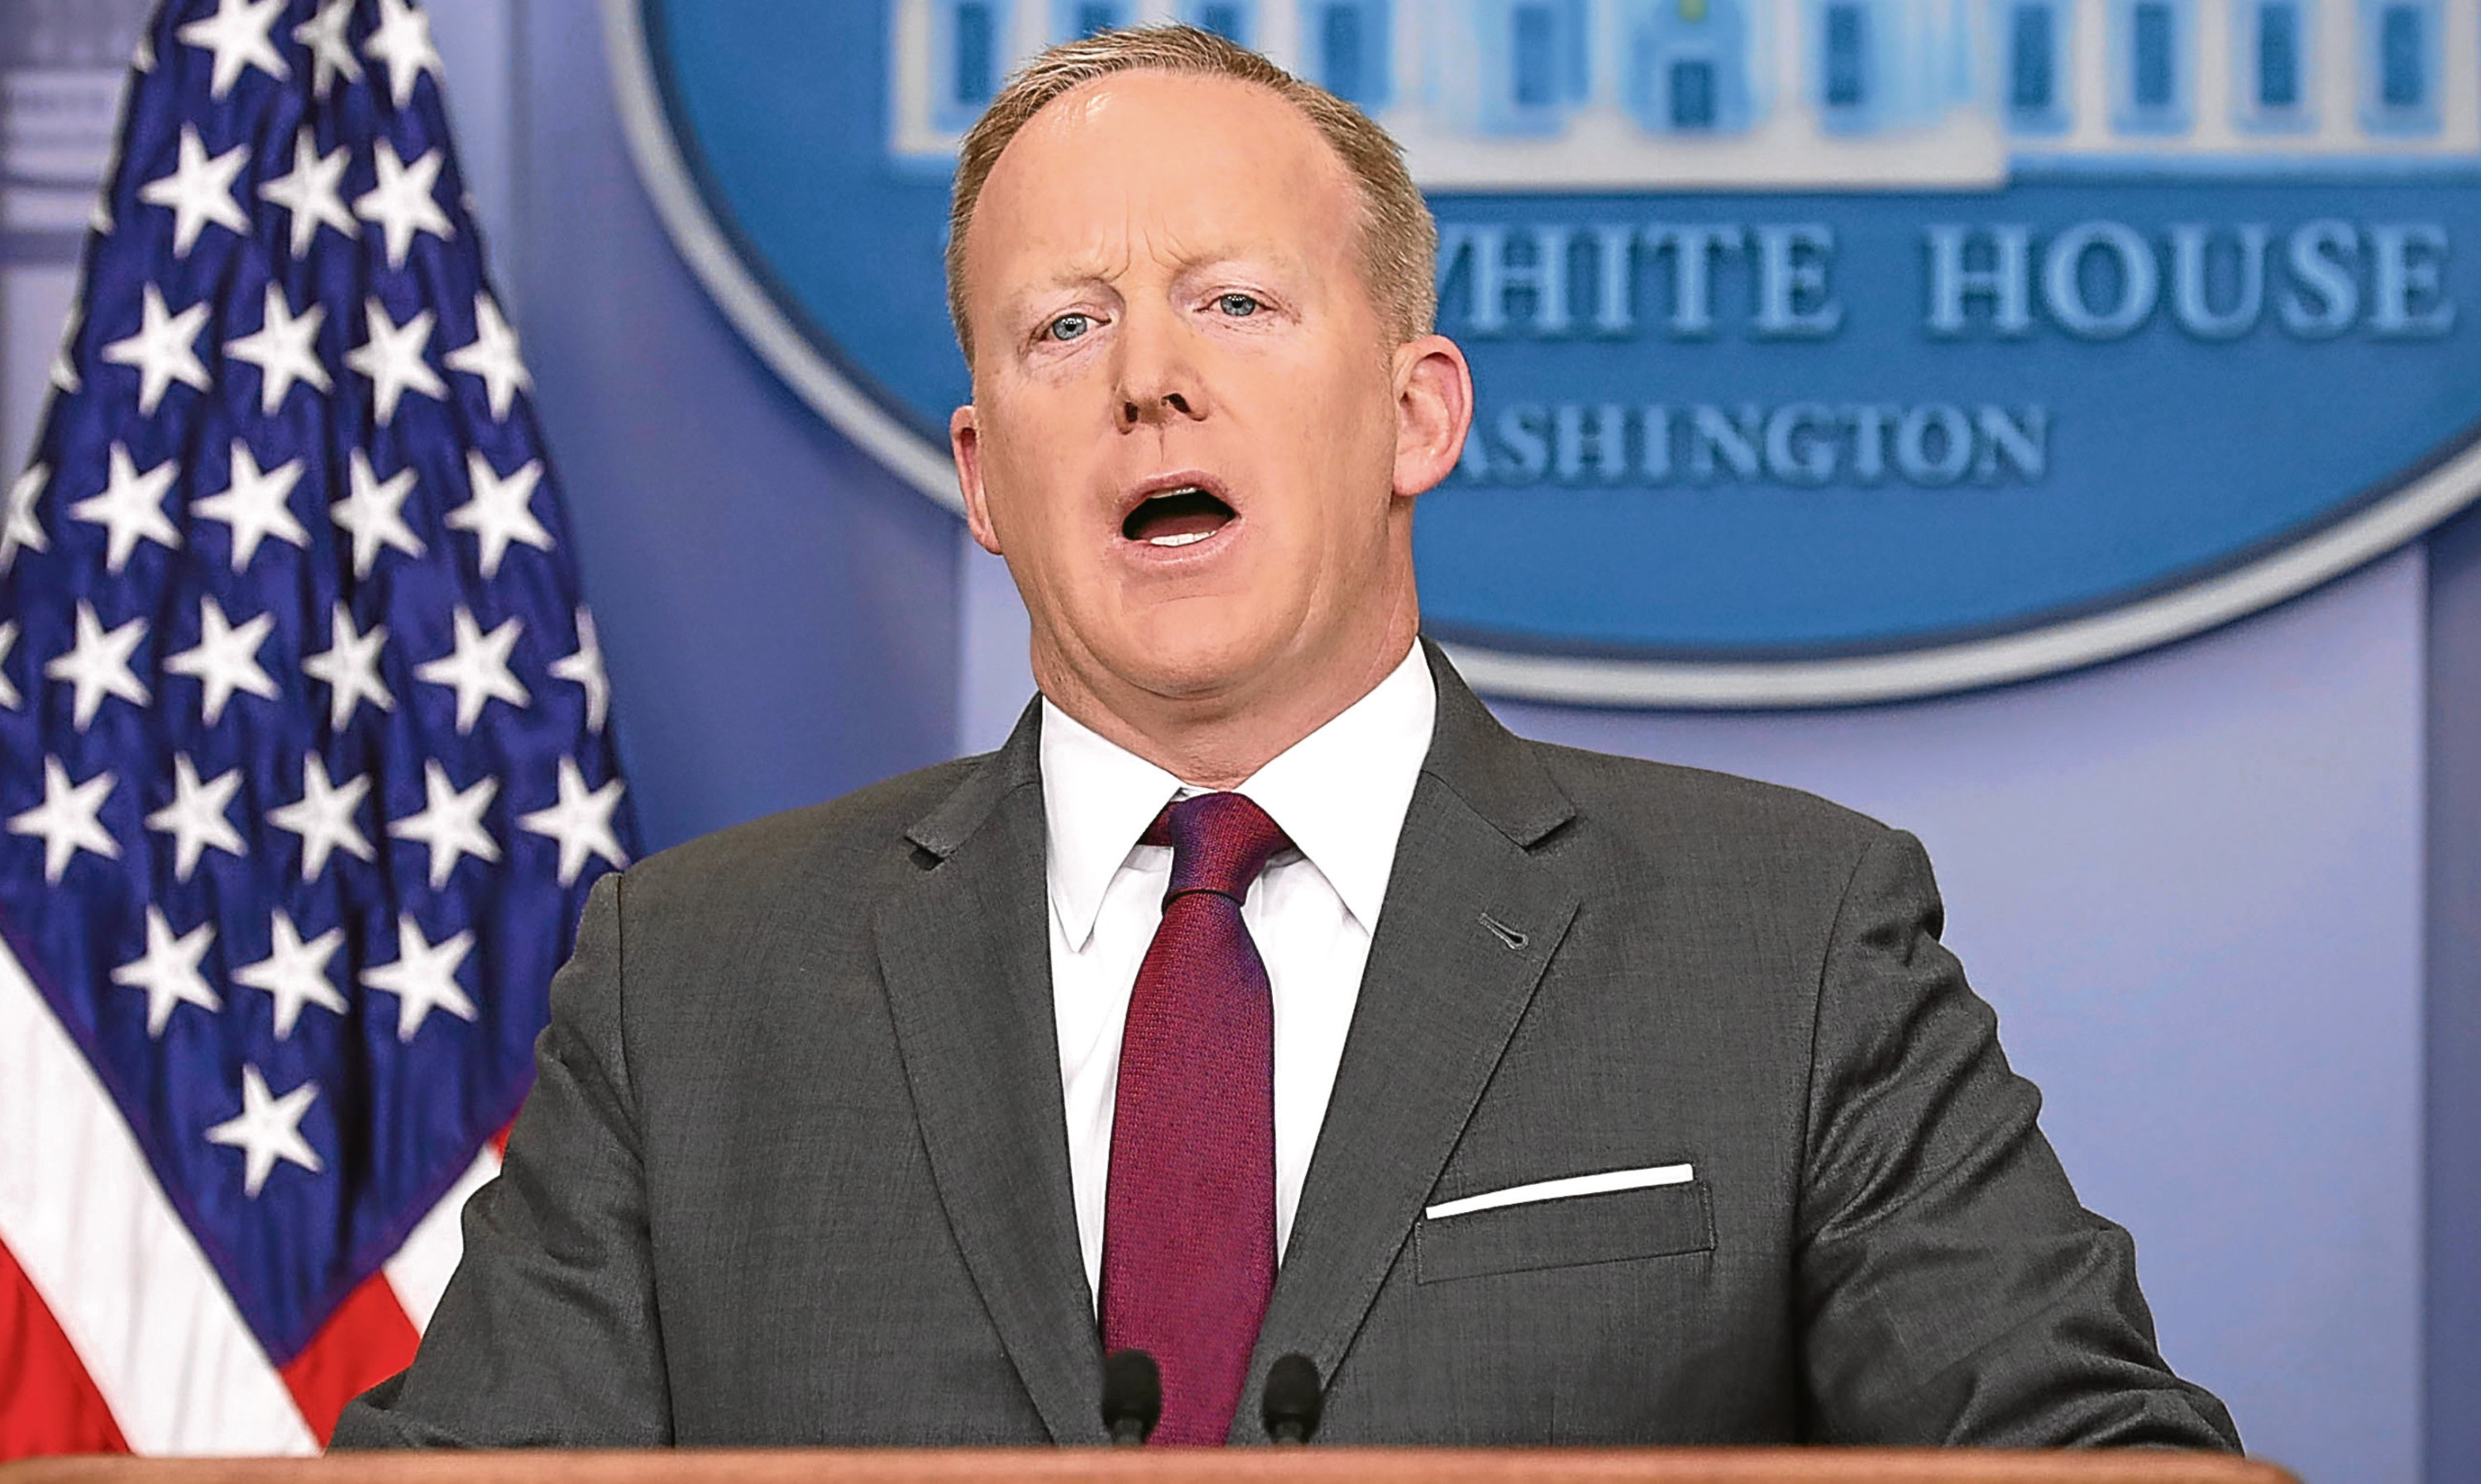 Sean Spicer is so famous, Melissa McCarthy now does a hilarious spoof of him.